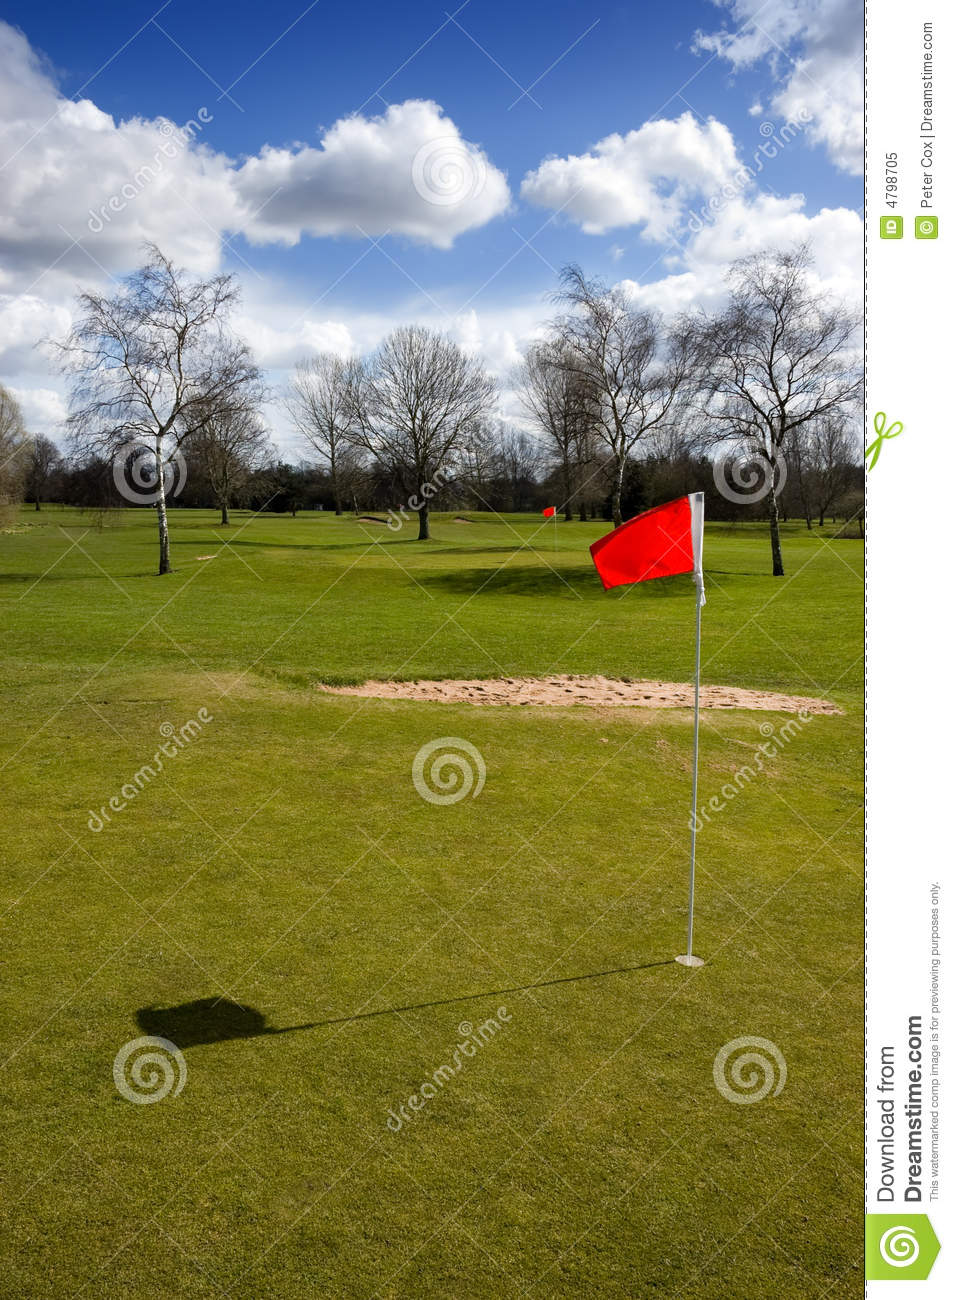 Red flag marking hole